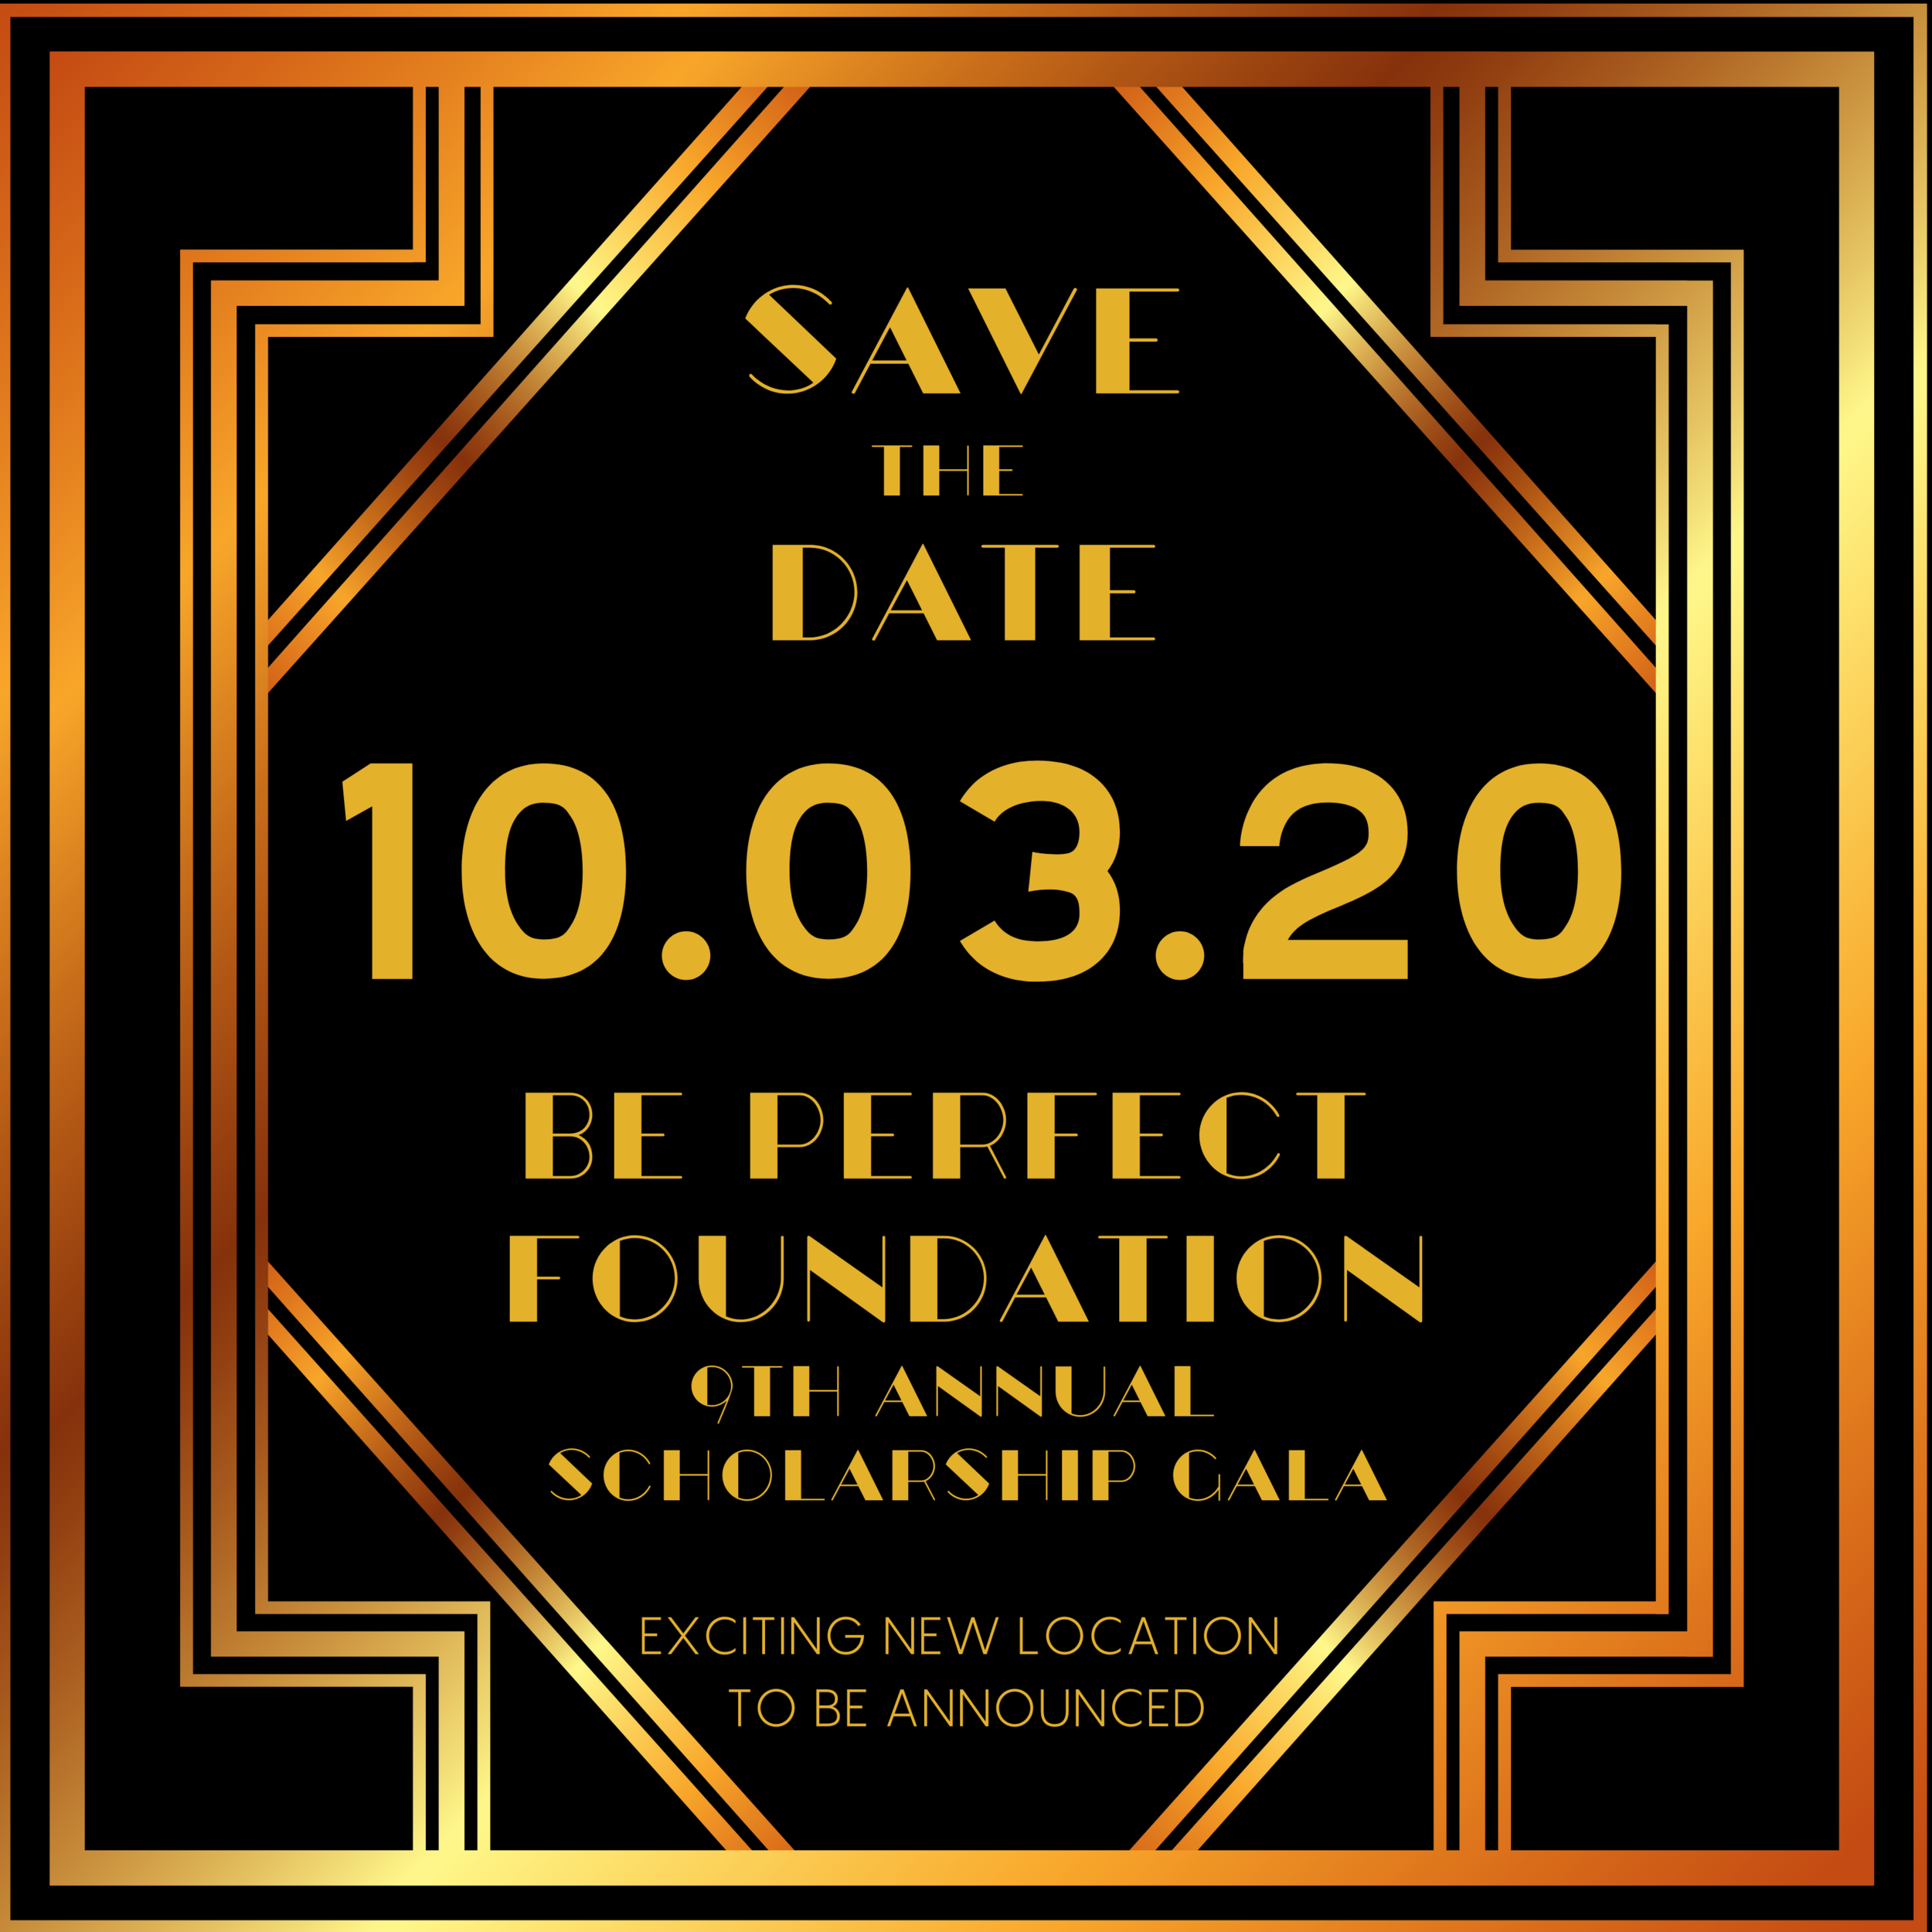 BP SAVE THE DATE (2).png